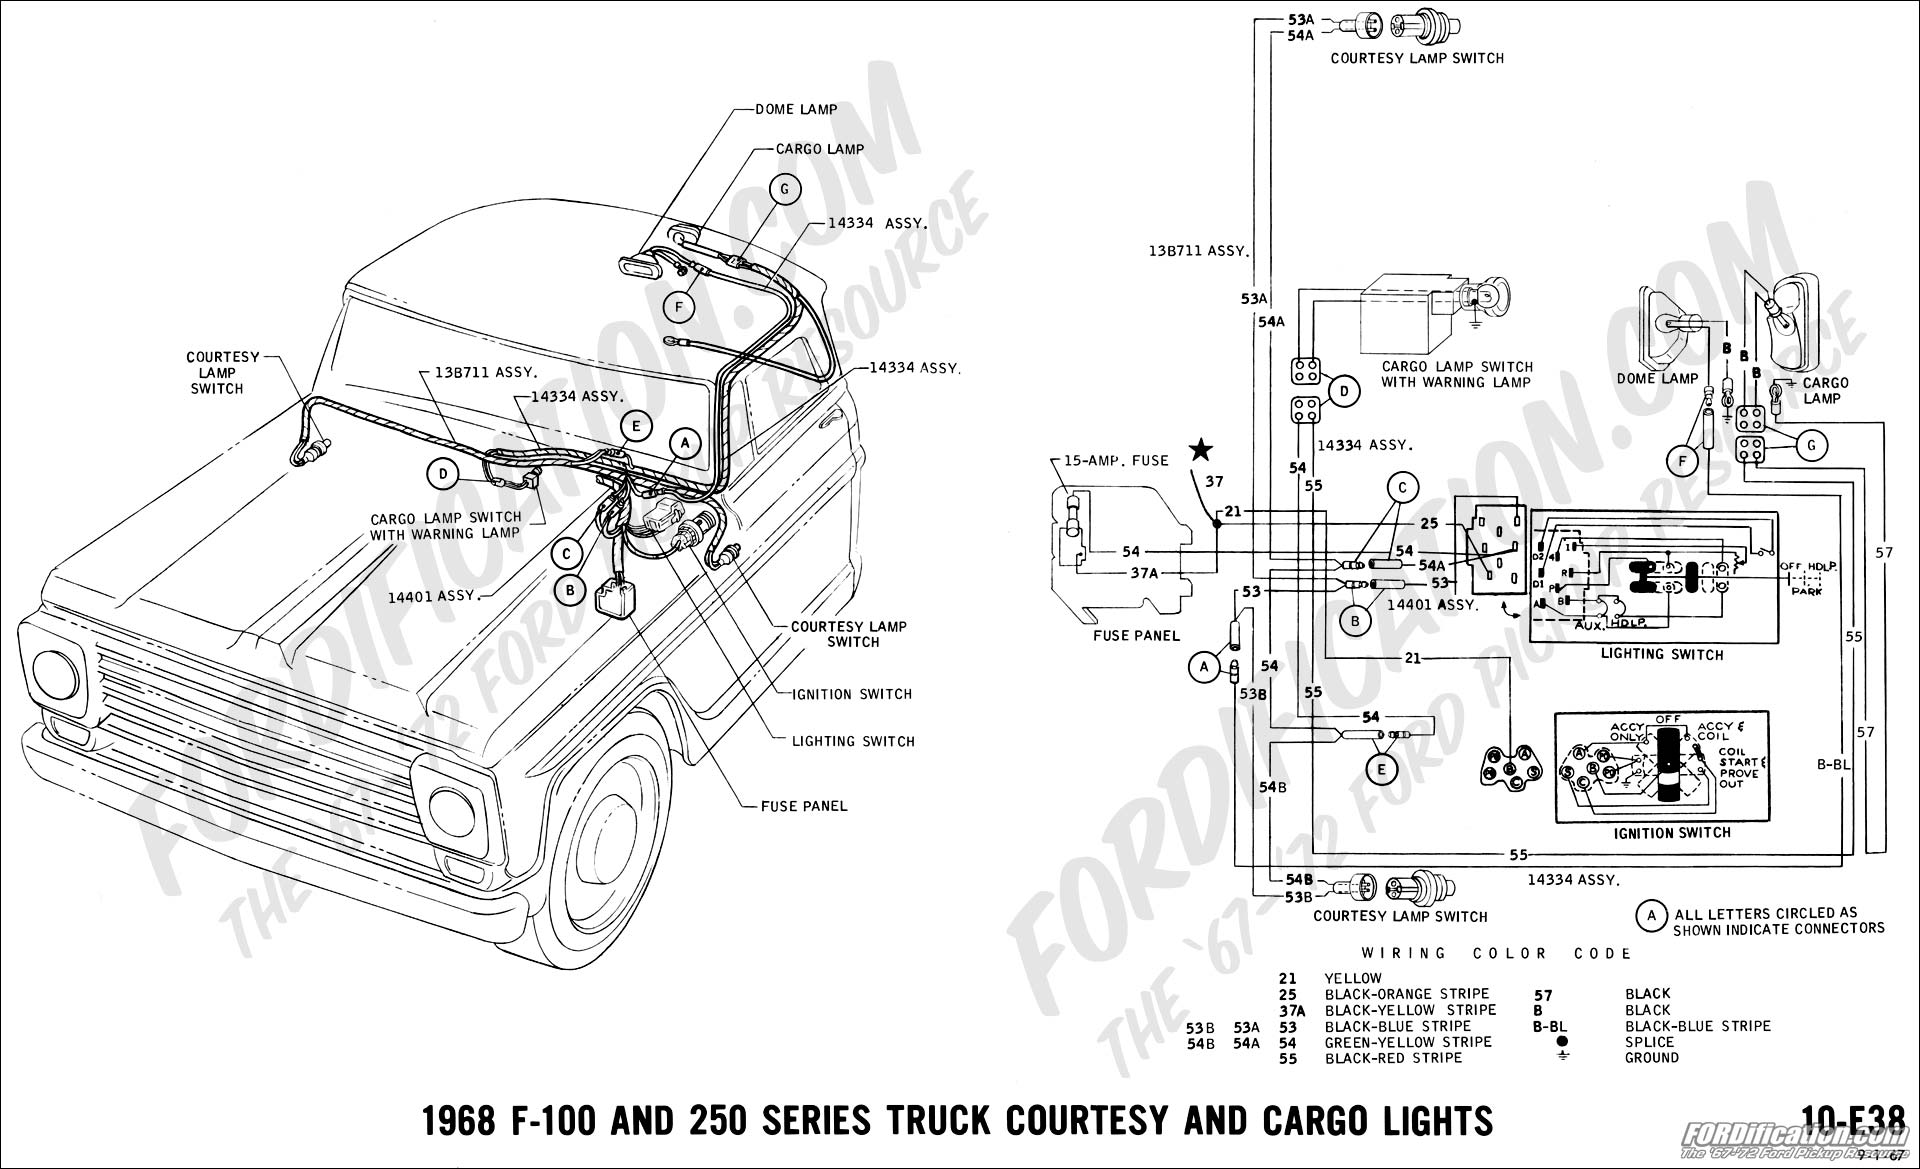 Ford F250 Camper Wiring Electrical Diagram Schematics 1964 Special Truck Technical Drawings And Section H Topper